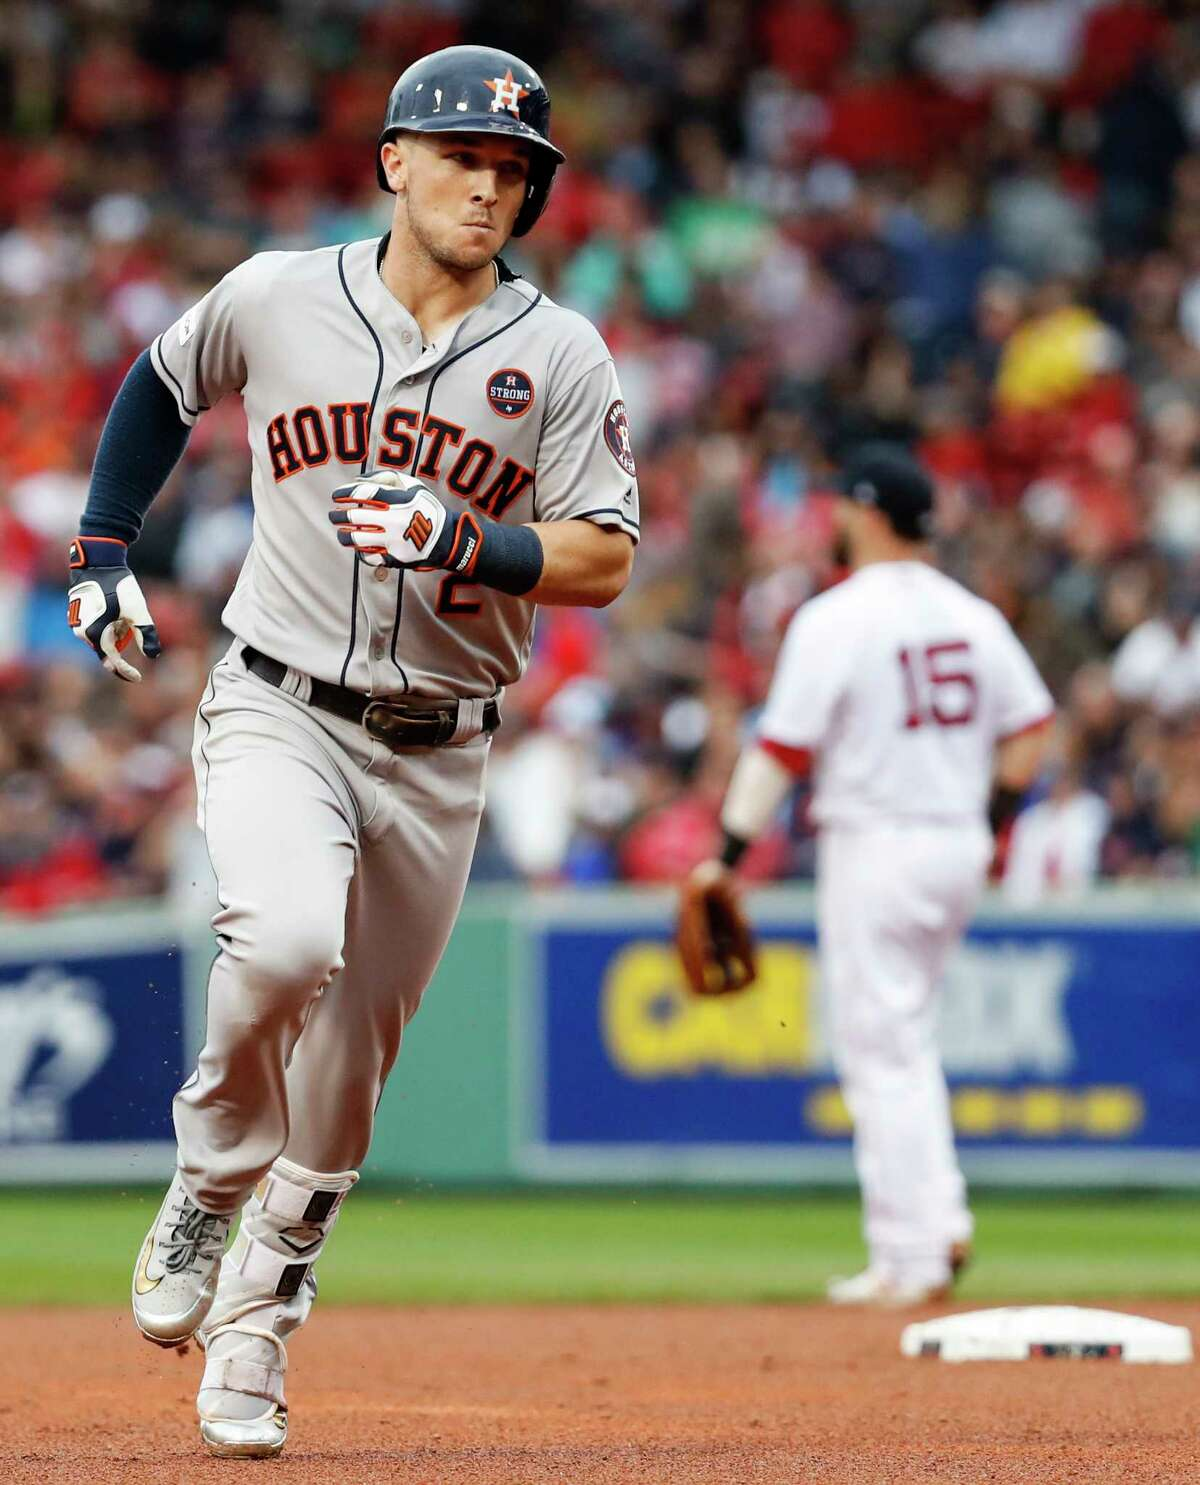 Houston Astros third baseman Alex Bregman (2) rounds the bases after hitting a solo home run off Boston Red Sox reliever Chris Sale to tie the game during the eighth inning of Game 4 of the ALDS at Fenway Park on Monday, Oct. 9, 2017, in Boston.